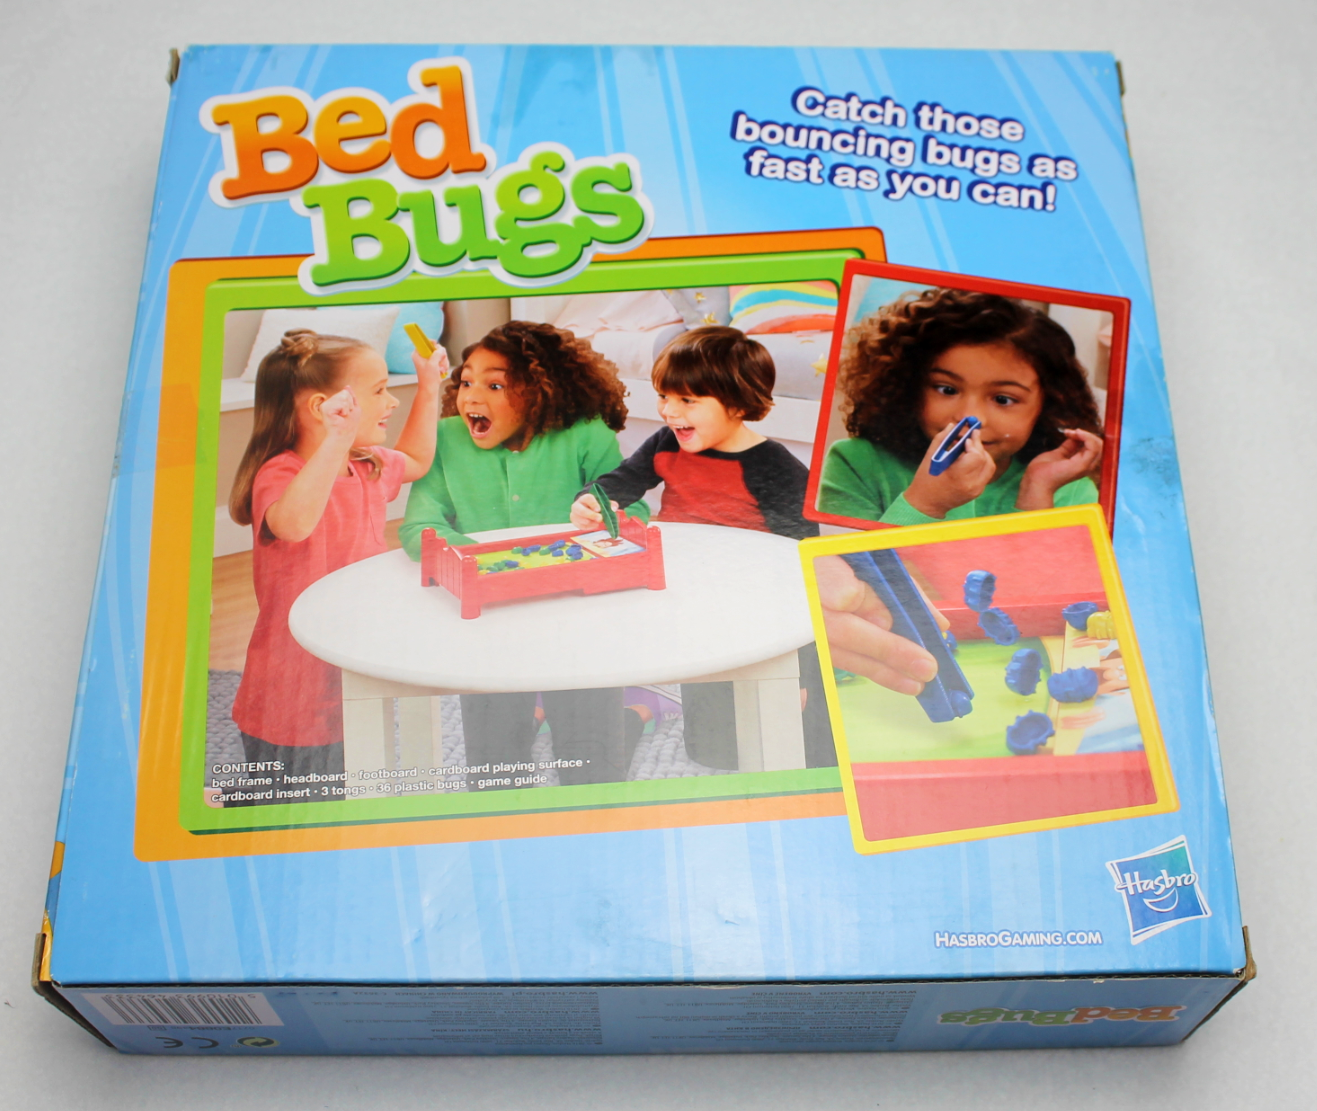 Bed bugs - hra